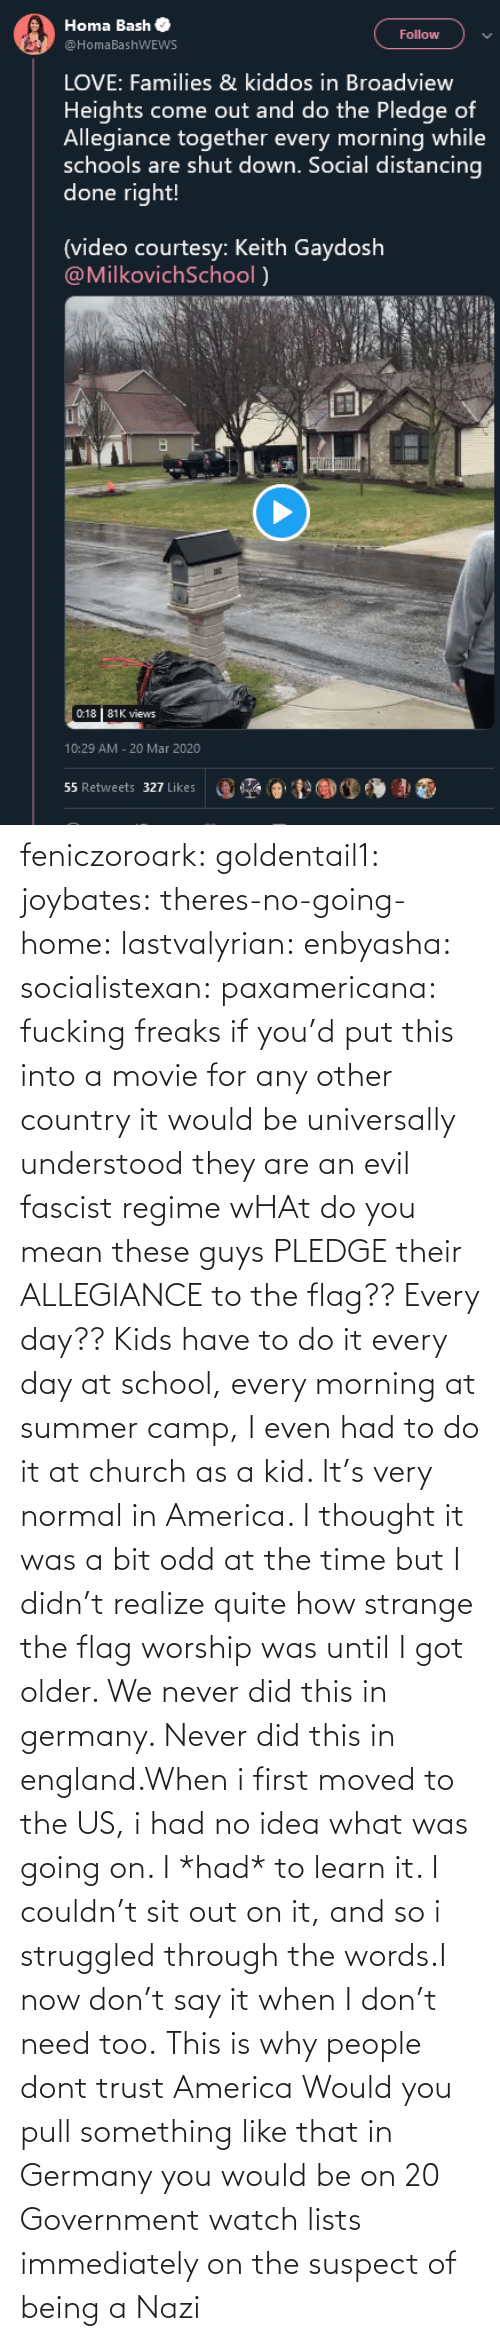 no idea: feniczoroark:  goldentail1:  joybates:  theres-no-going-home:  lastvalyrian:  enbyasha:  socialistexan:  paxamericana: fucking freaks       if you'd put this into a movie for any other country it would be universally understood they are an evil fascist regime    wHAt do you mean these guys PLEDGE their ALLEGIANCE to the flag?? Every day??   Kids have to do it every day at school, every morning at summer camp, I even had to do it at church as a kid. It's very normal in America. I thought it was a bit odd at the time but I didn't realize quite how strange the flag worship was until I got older.    We never did this in germany. Never did this in england.When i first moved to the US, i had no idea what was going on. I *had* to learn it. I couldn't sit out on it, and so i struggled through the words.I now don't say it when I don't need too.   This is why people dont trust America    Would you pull something like that in Germany you would be on 20 Government watch lists immediately on the suspect of being a Nazi